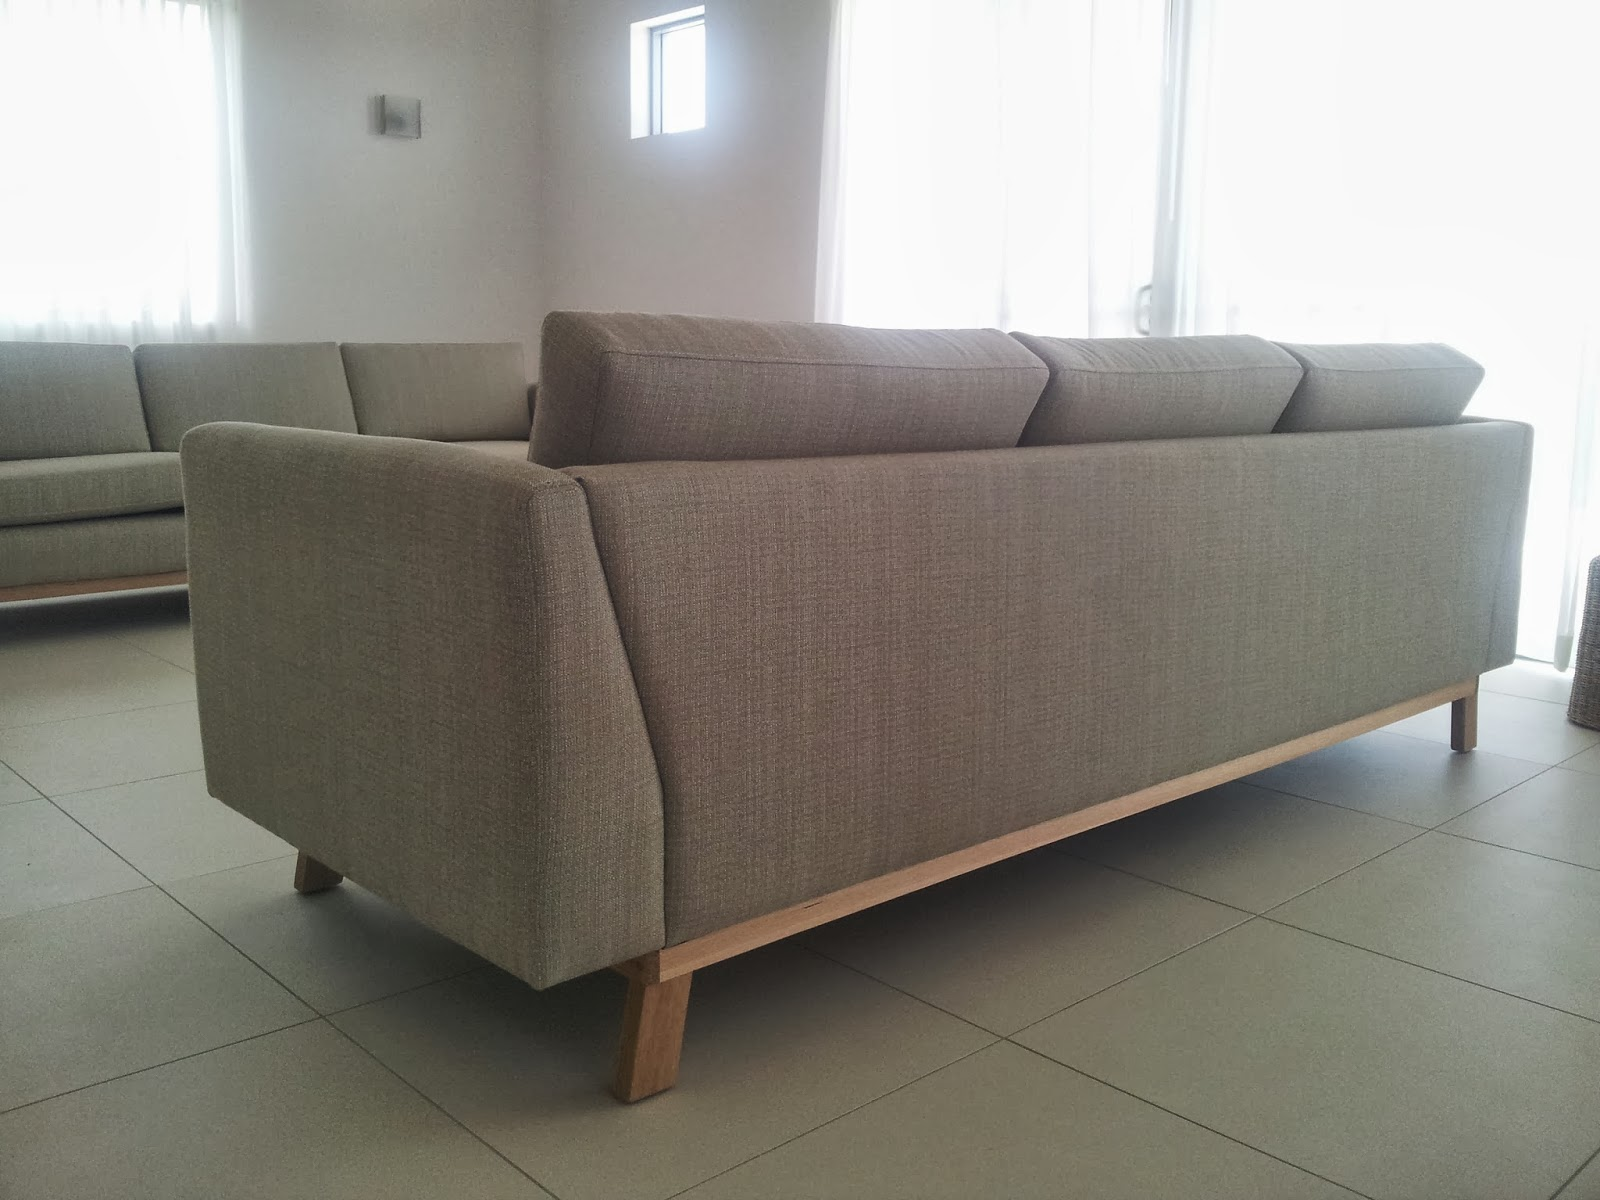 Sofa Beds Sydney Fantastic Furniture Sofab Faith Small Scale Sectional Tomato Australian Made Sofas | Brokeasshome.com